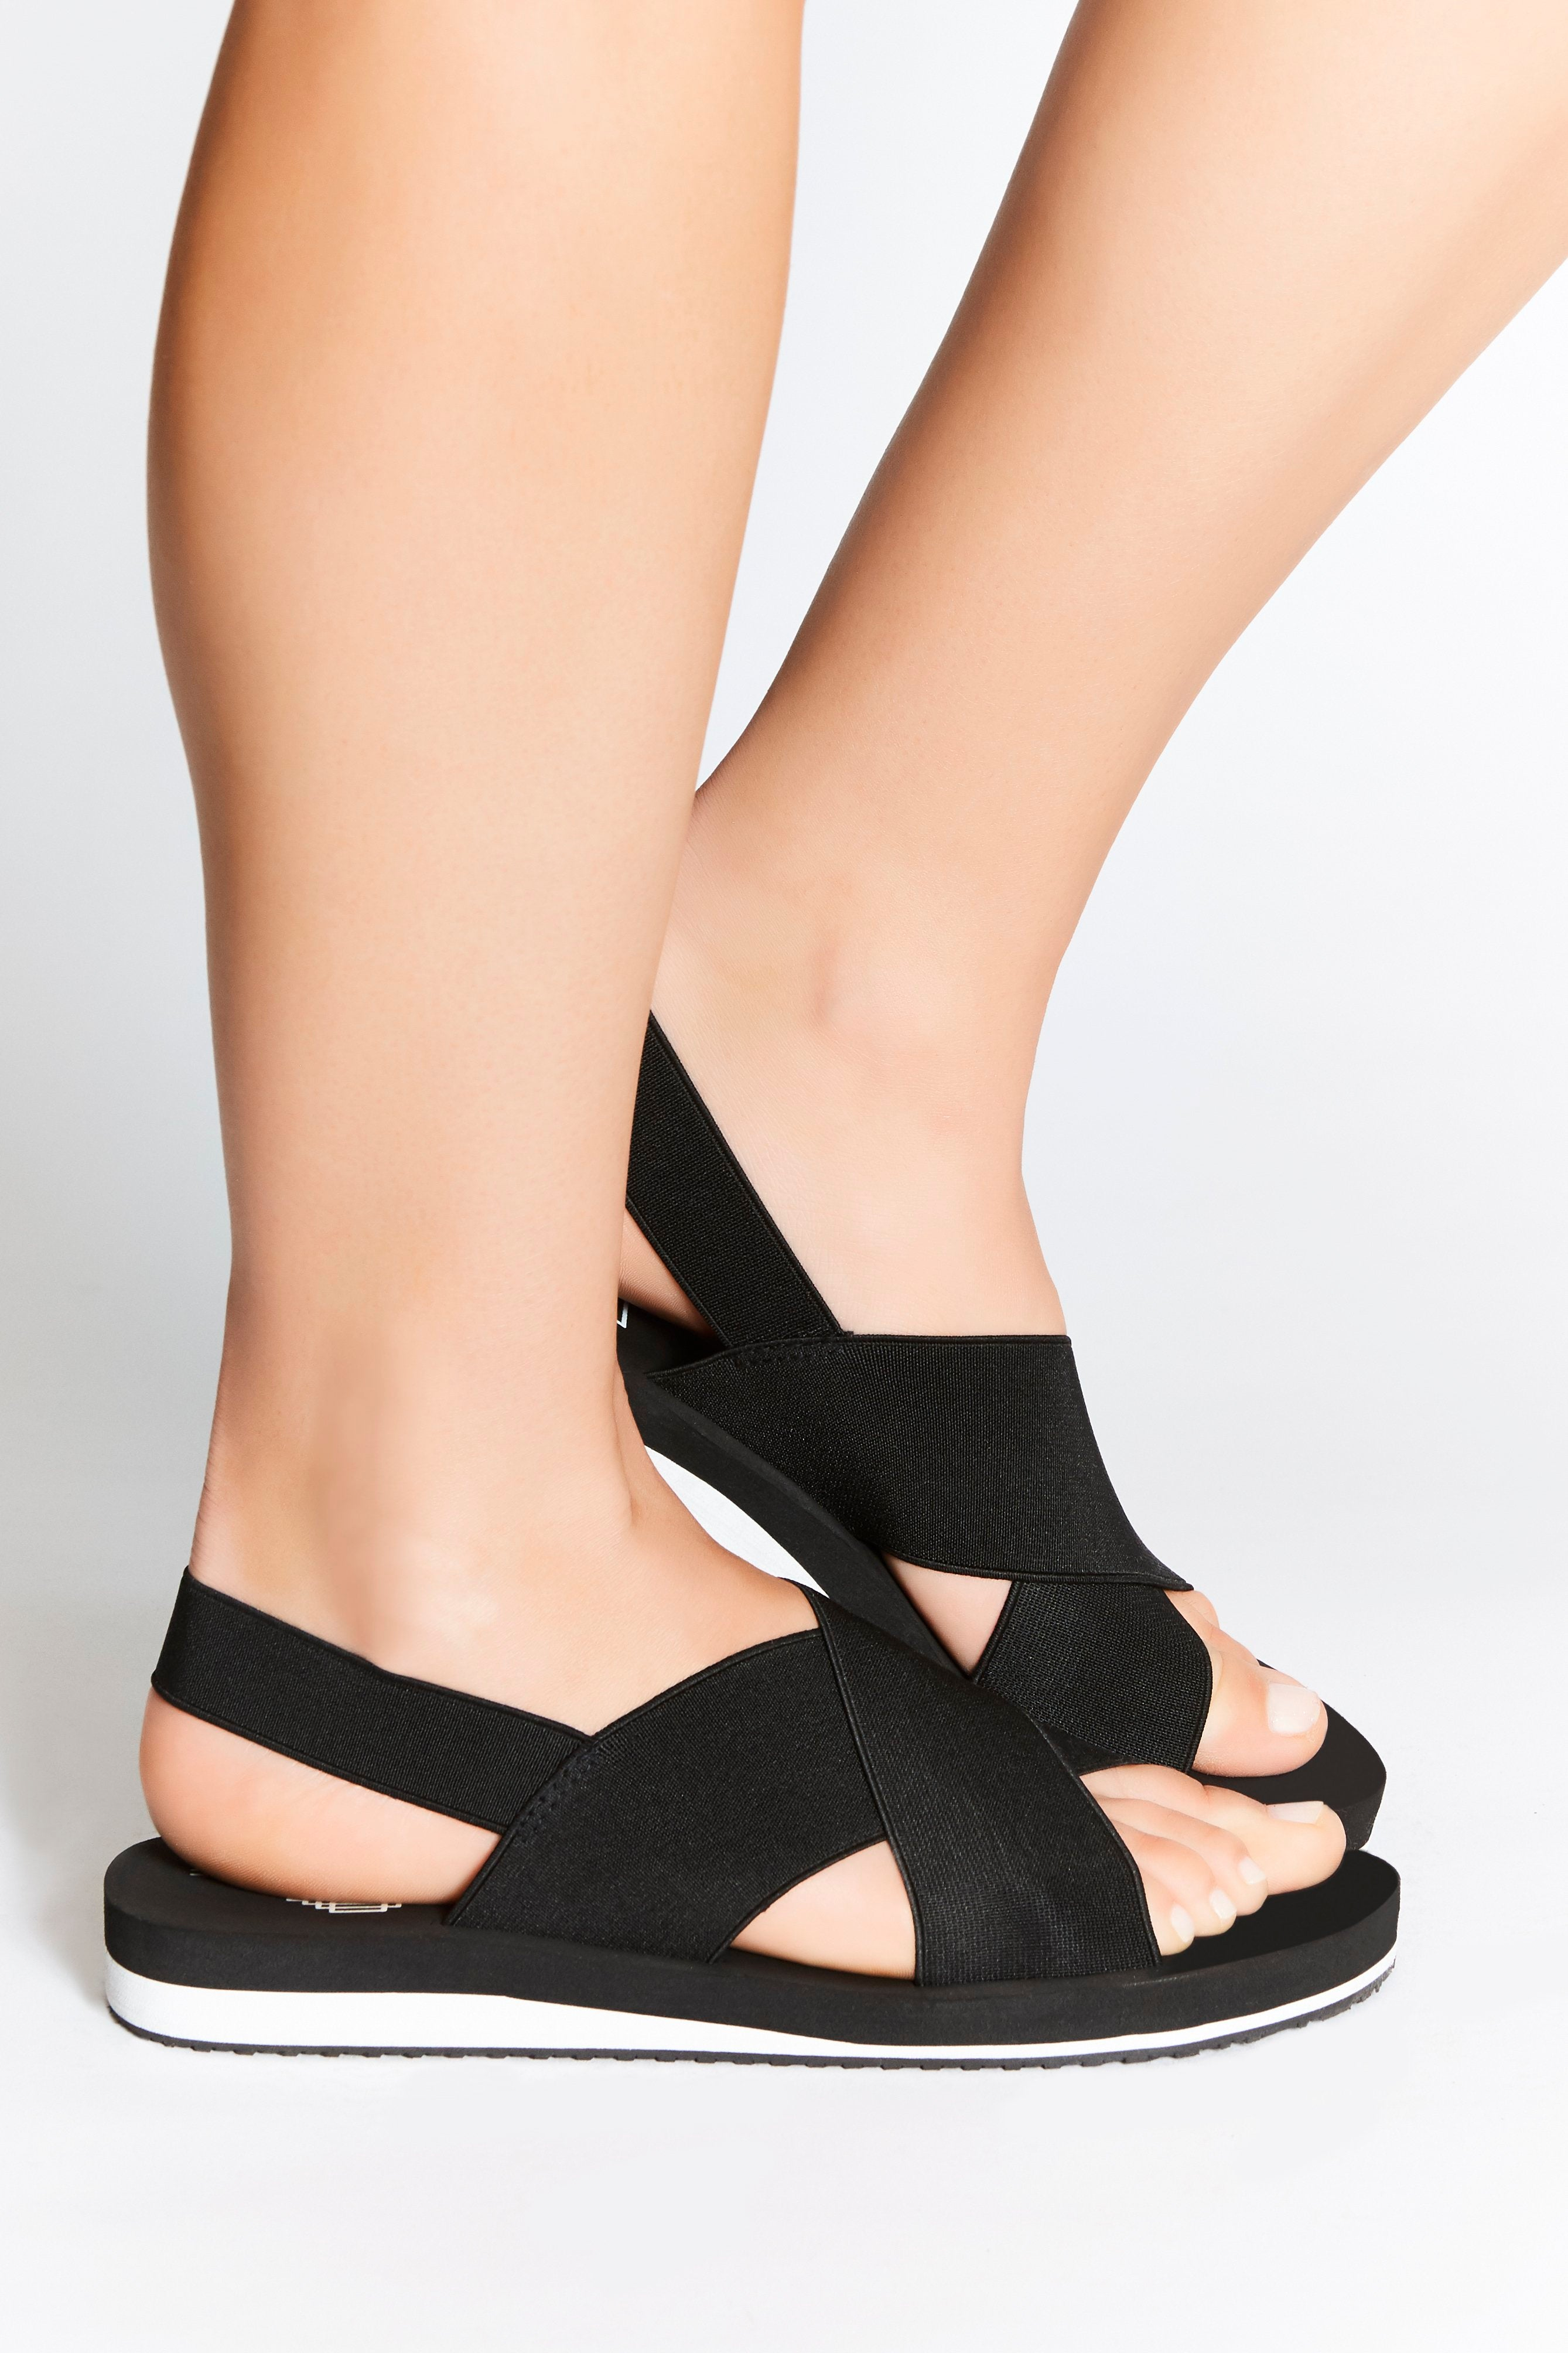 Comfortable, non-leather sandals for